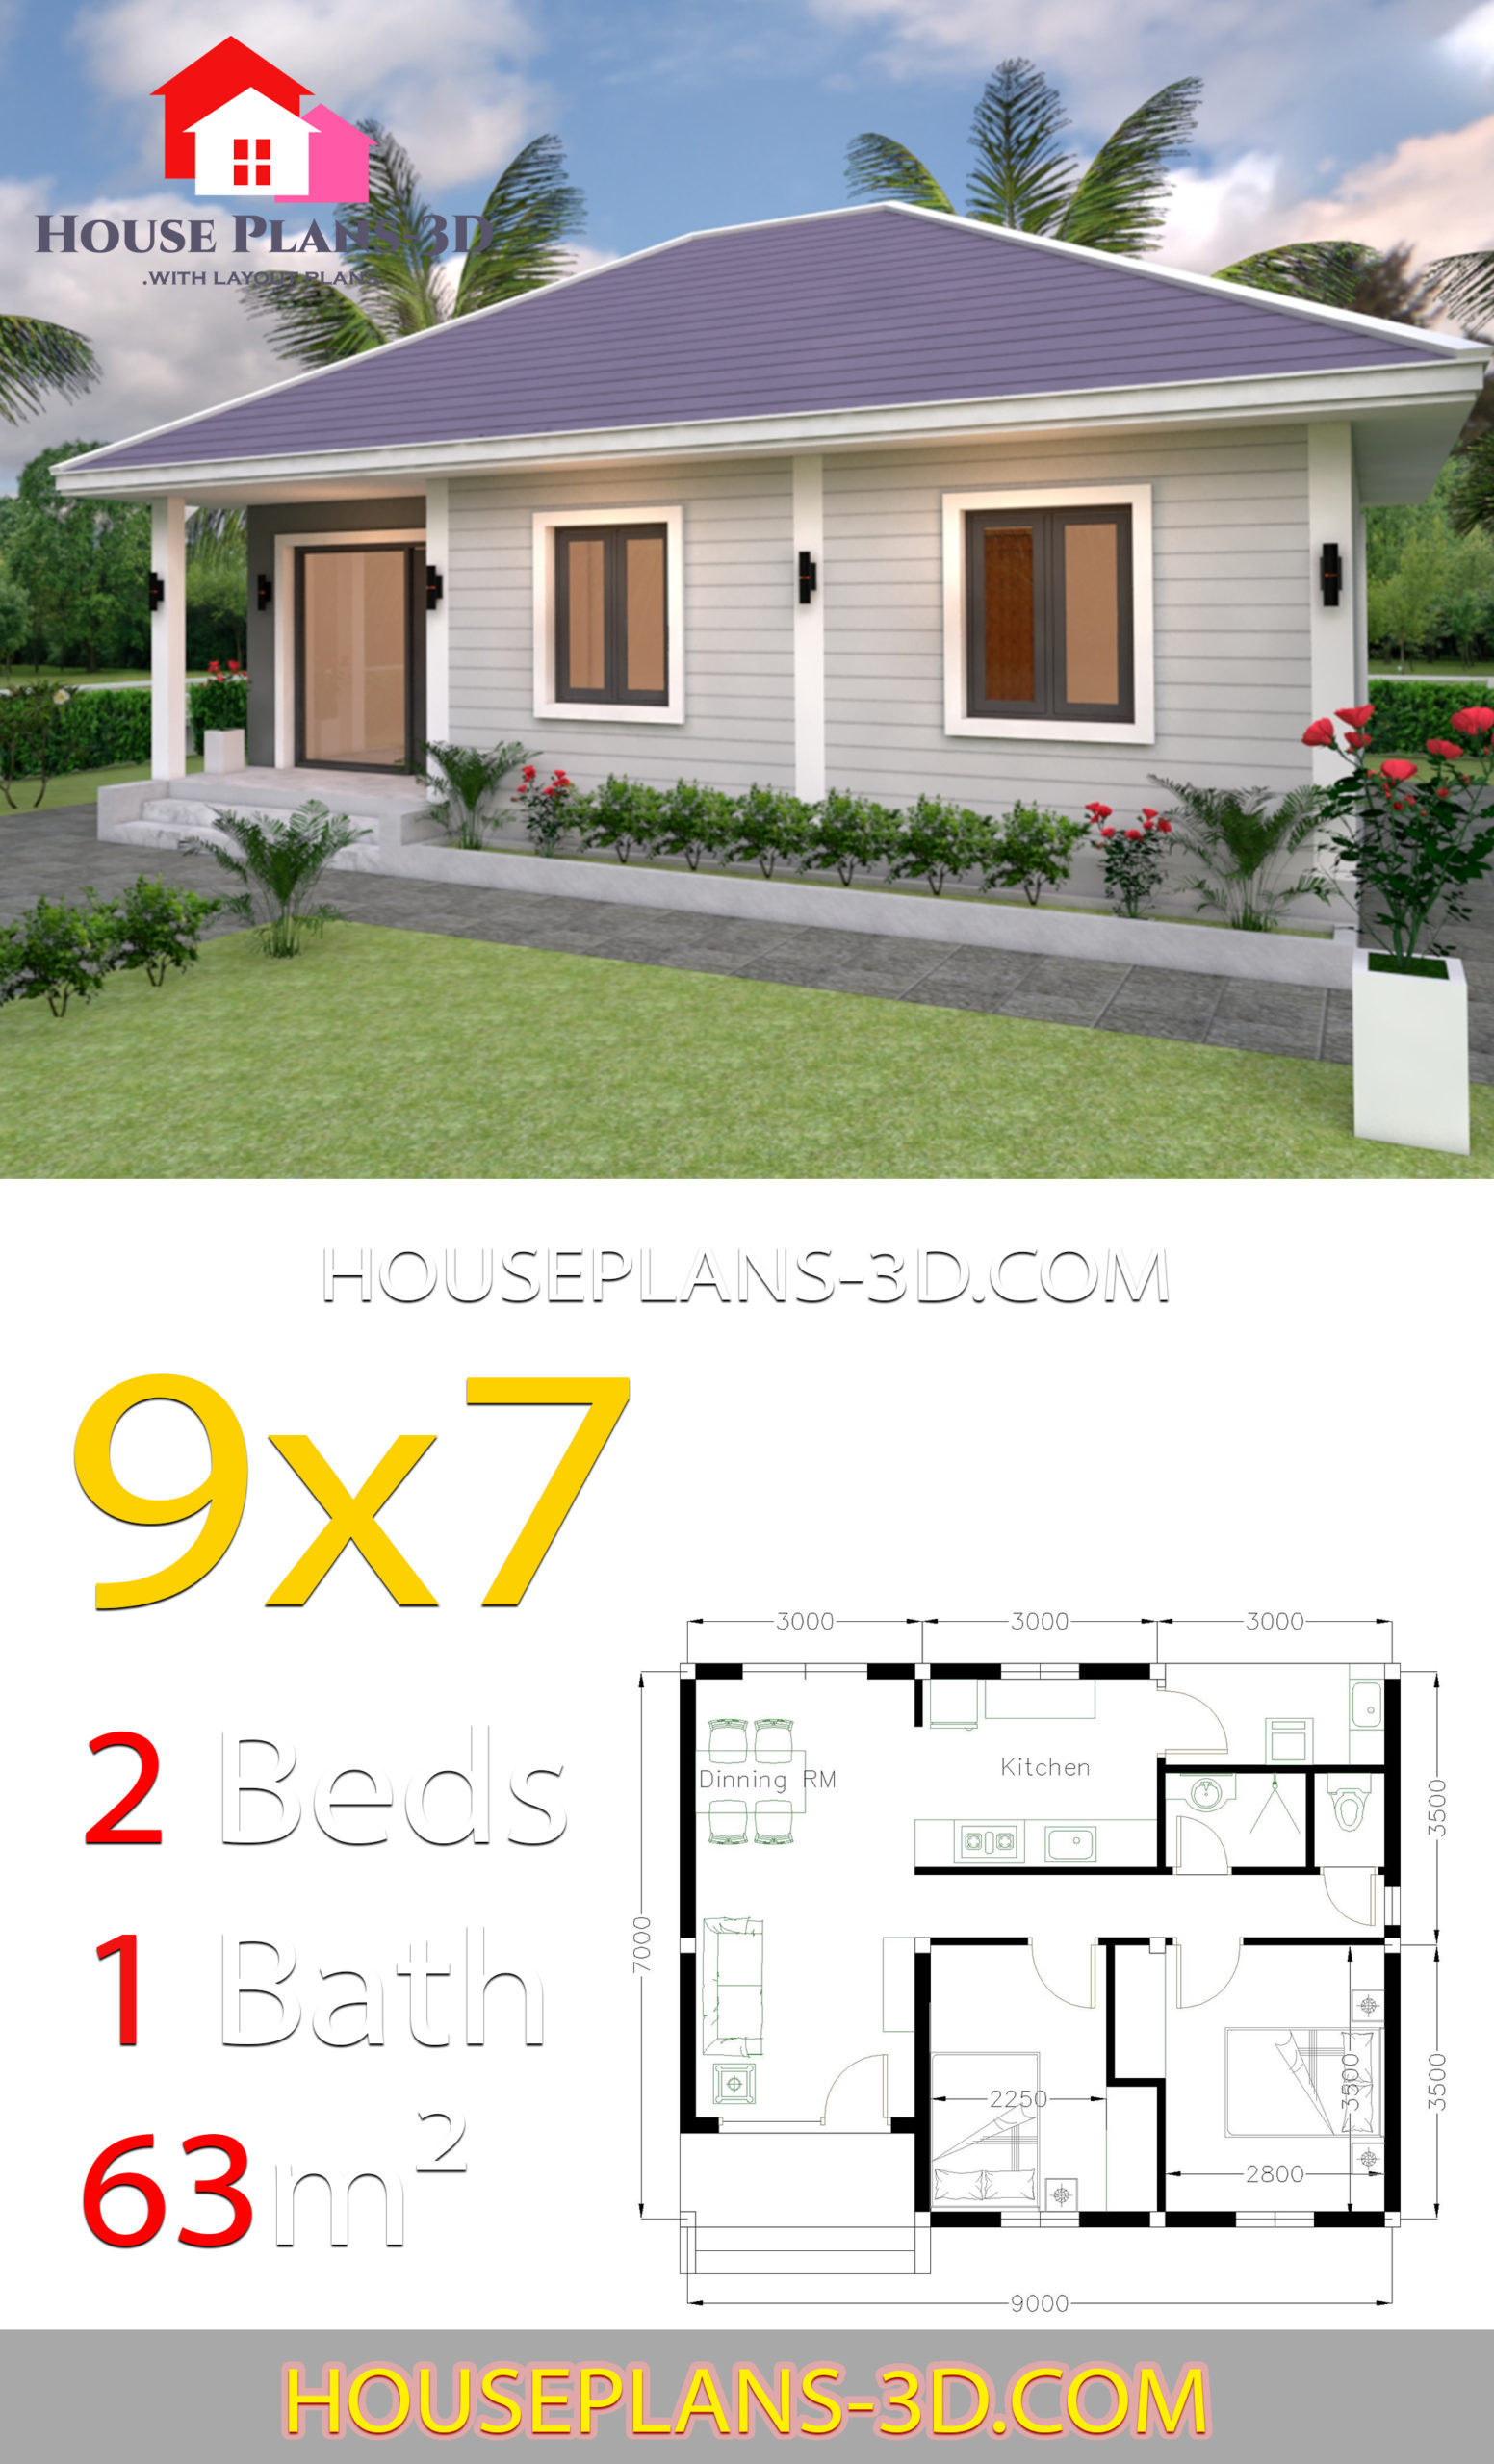 House Plans 9x7 With 2 Bedrooms Hip Roof House Plans 3d